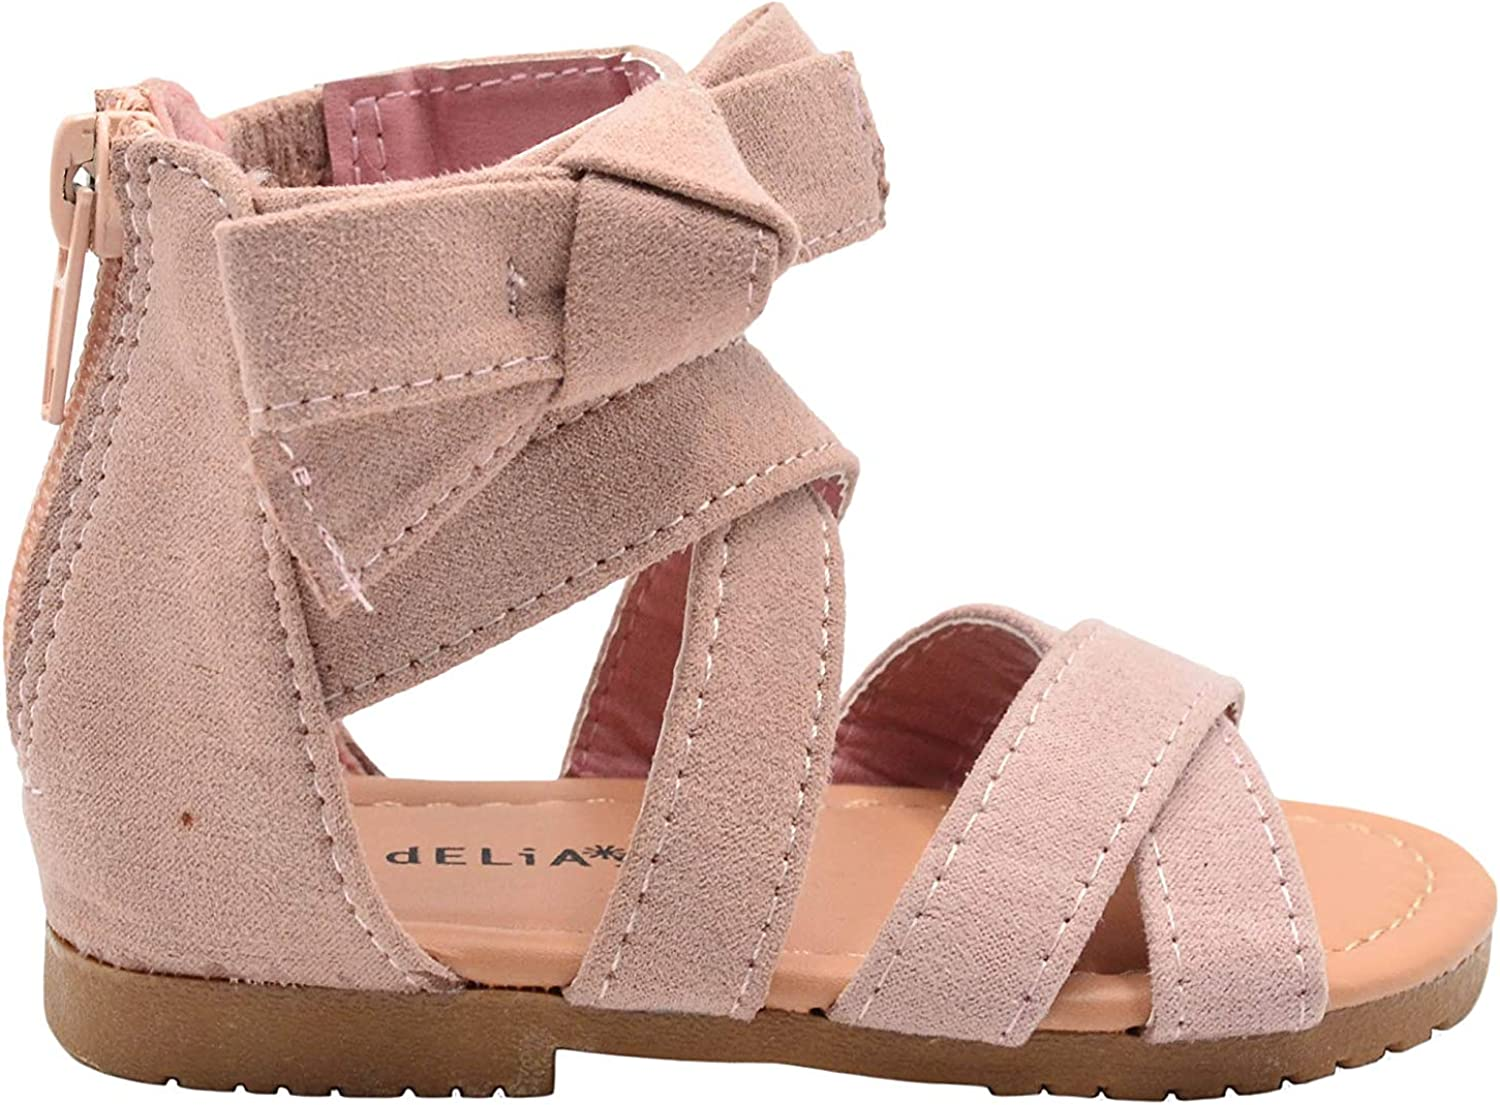 dELiAs Toddler Girls Fashion Sandals Ankle Up Fla Microsuede Zip Now free Popular brand shipping